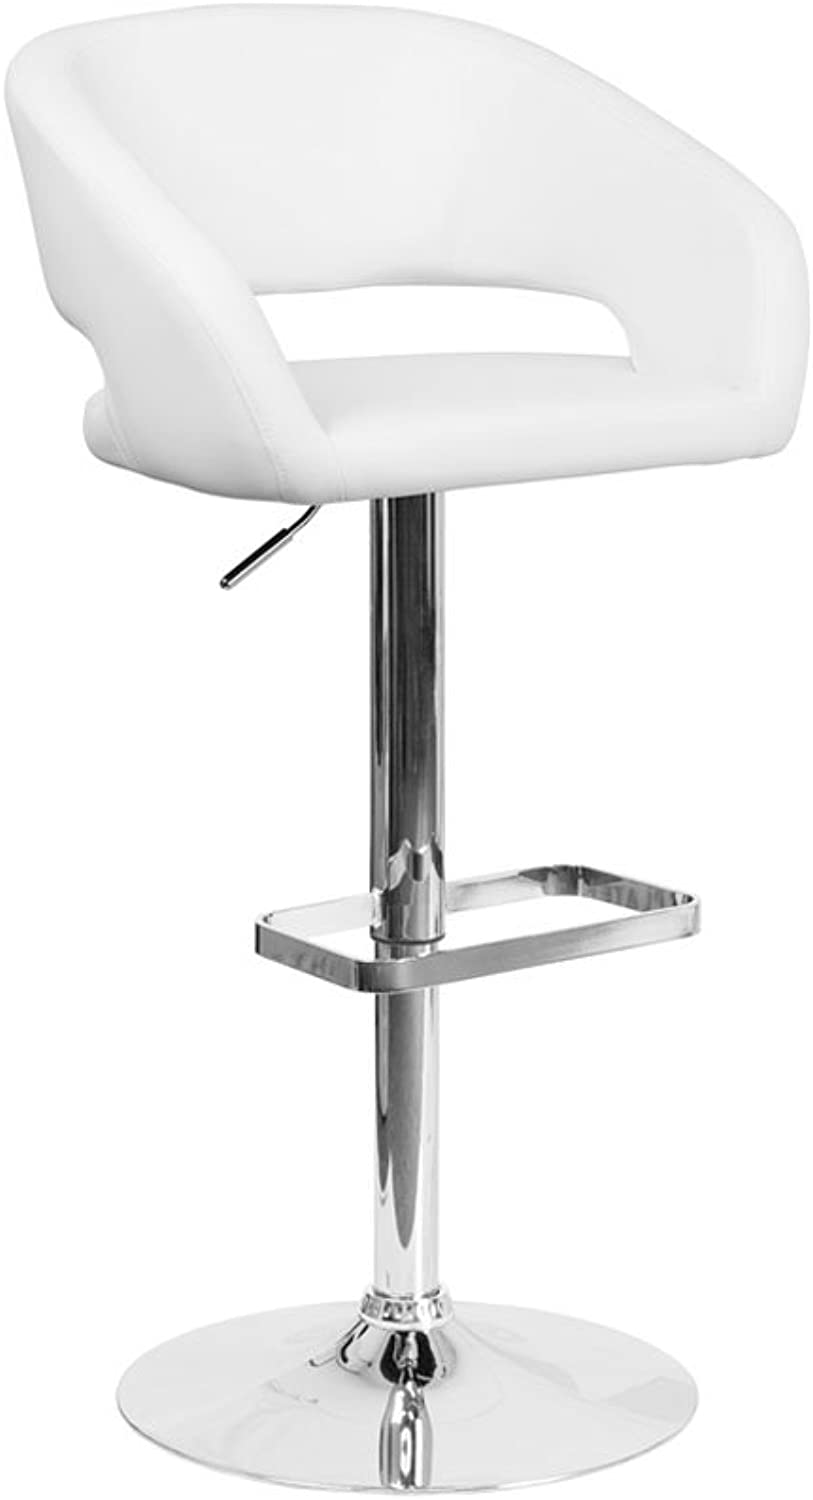 Offex Contemporary Vinyl Adjustable Height Barstool with Chrome Base, 20.5  x 21'' x 42'', White (OFX-400221-FF)